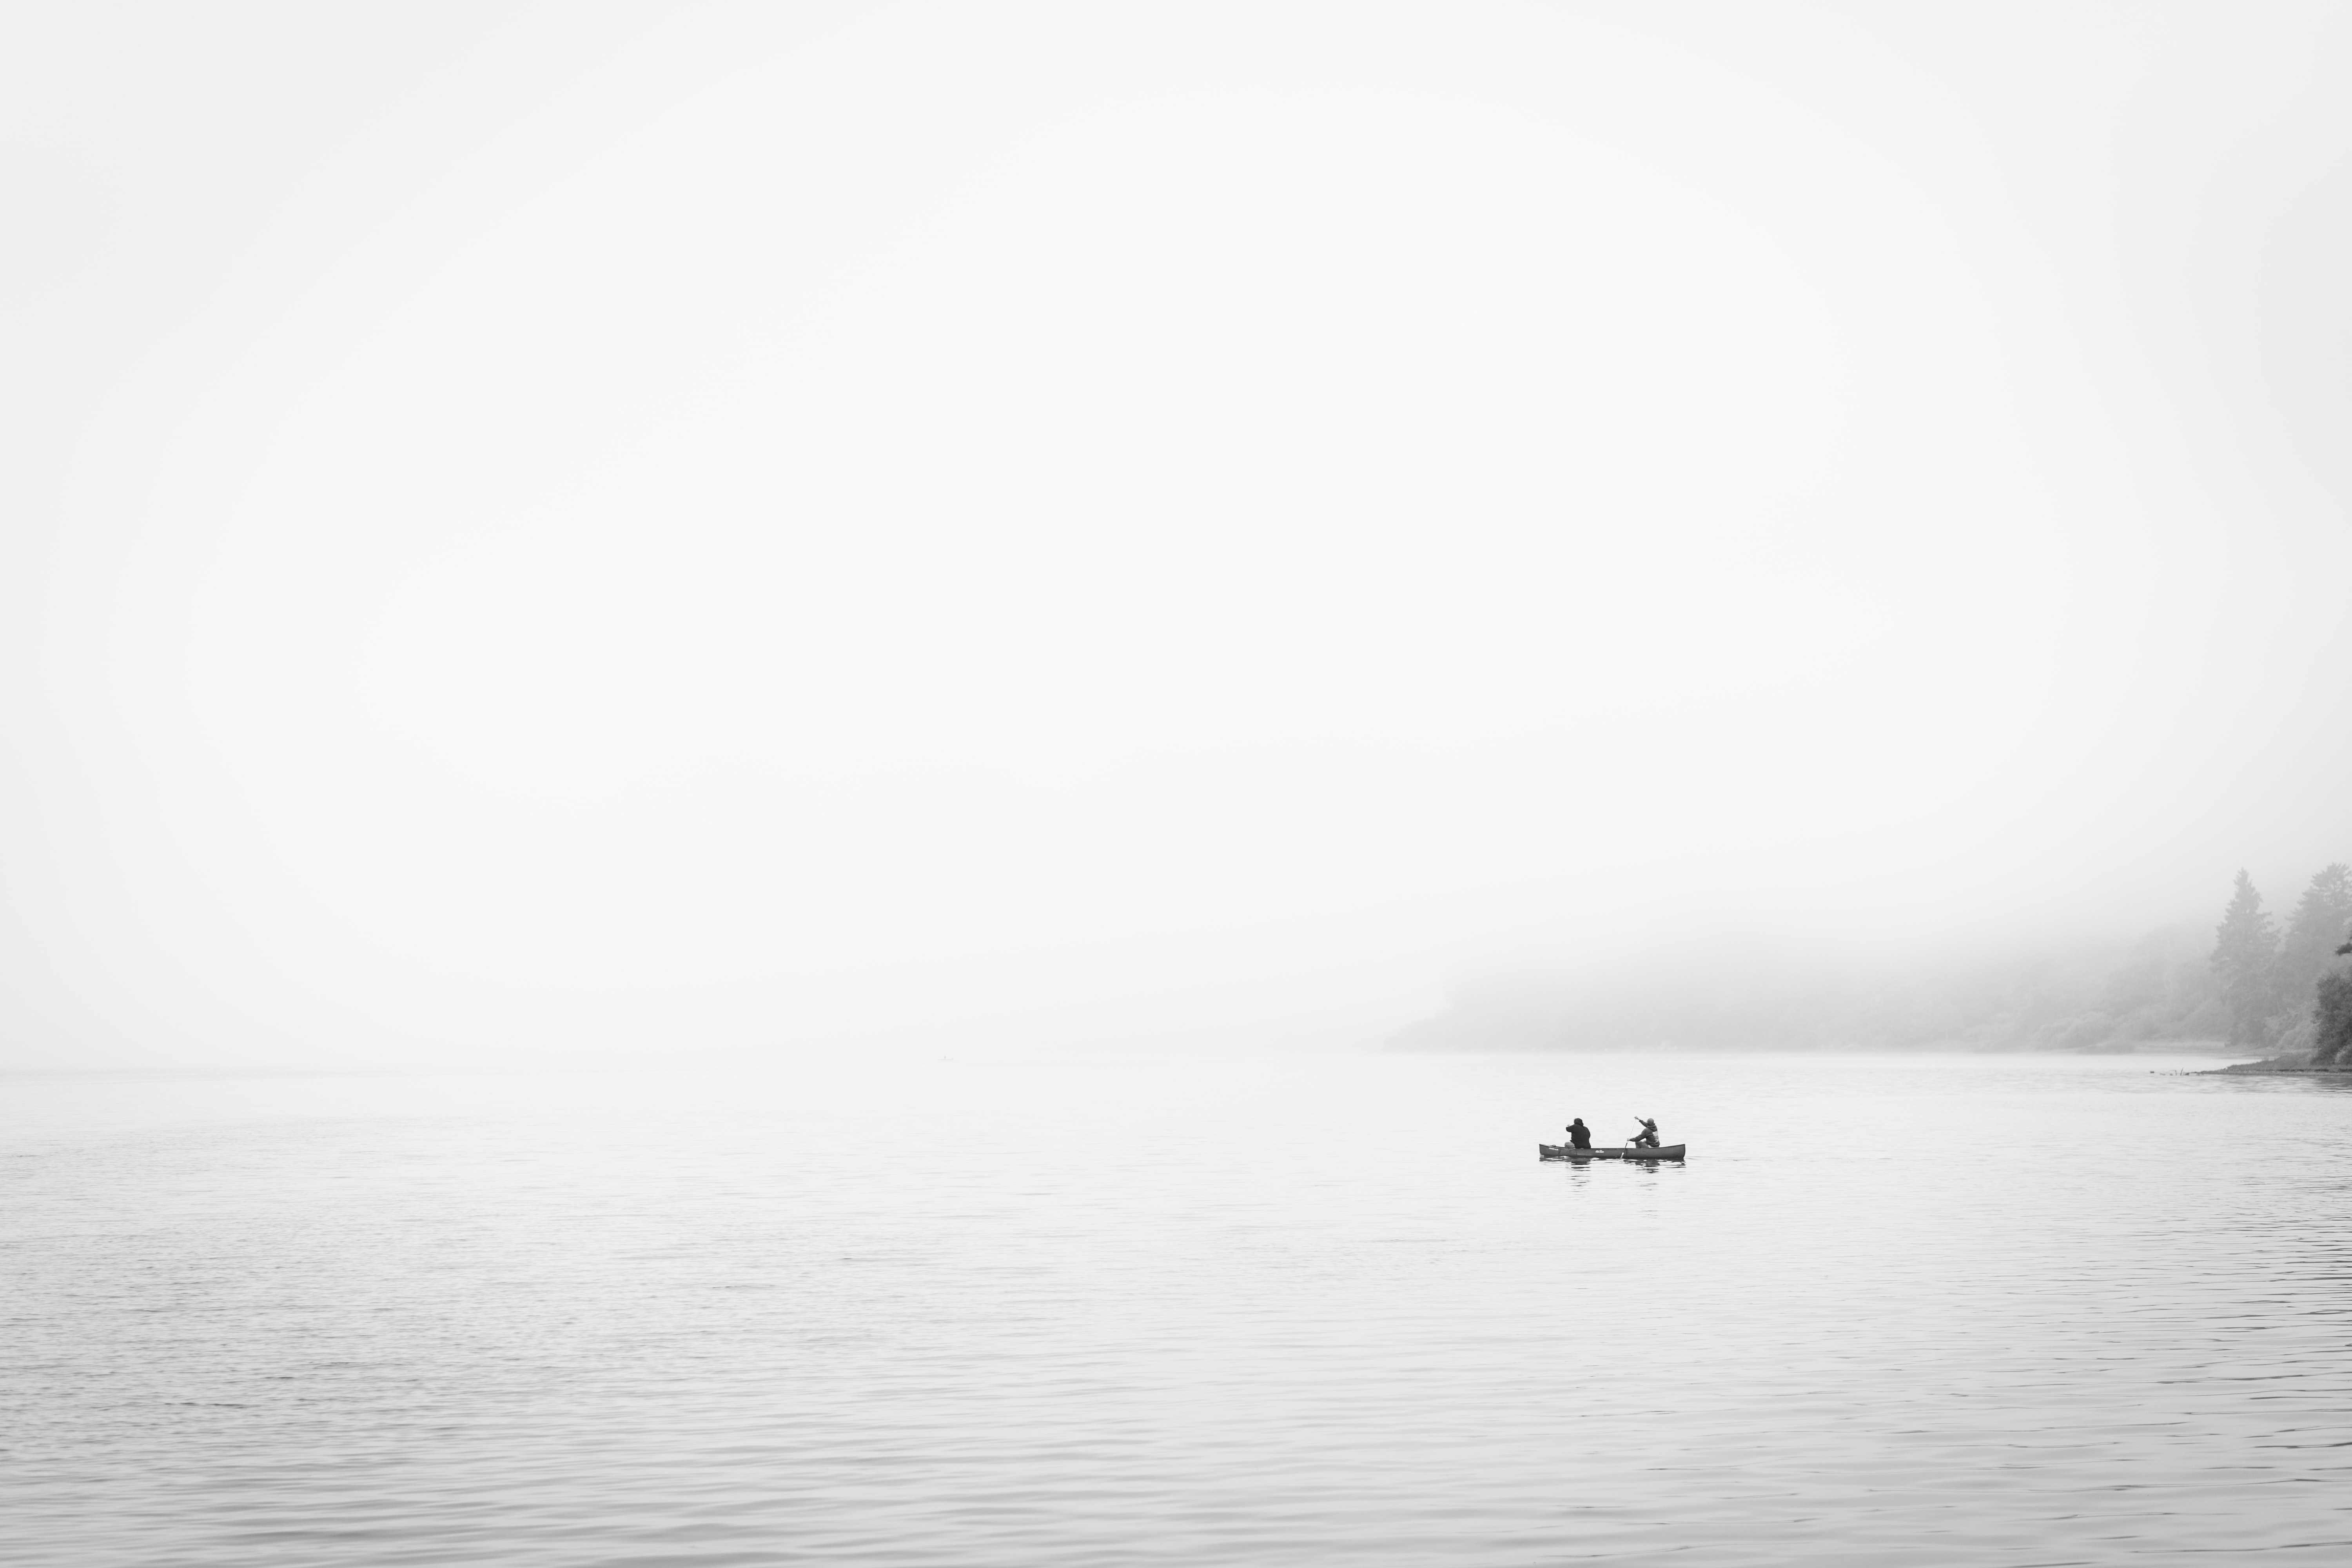 two person in boat on body of water